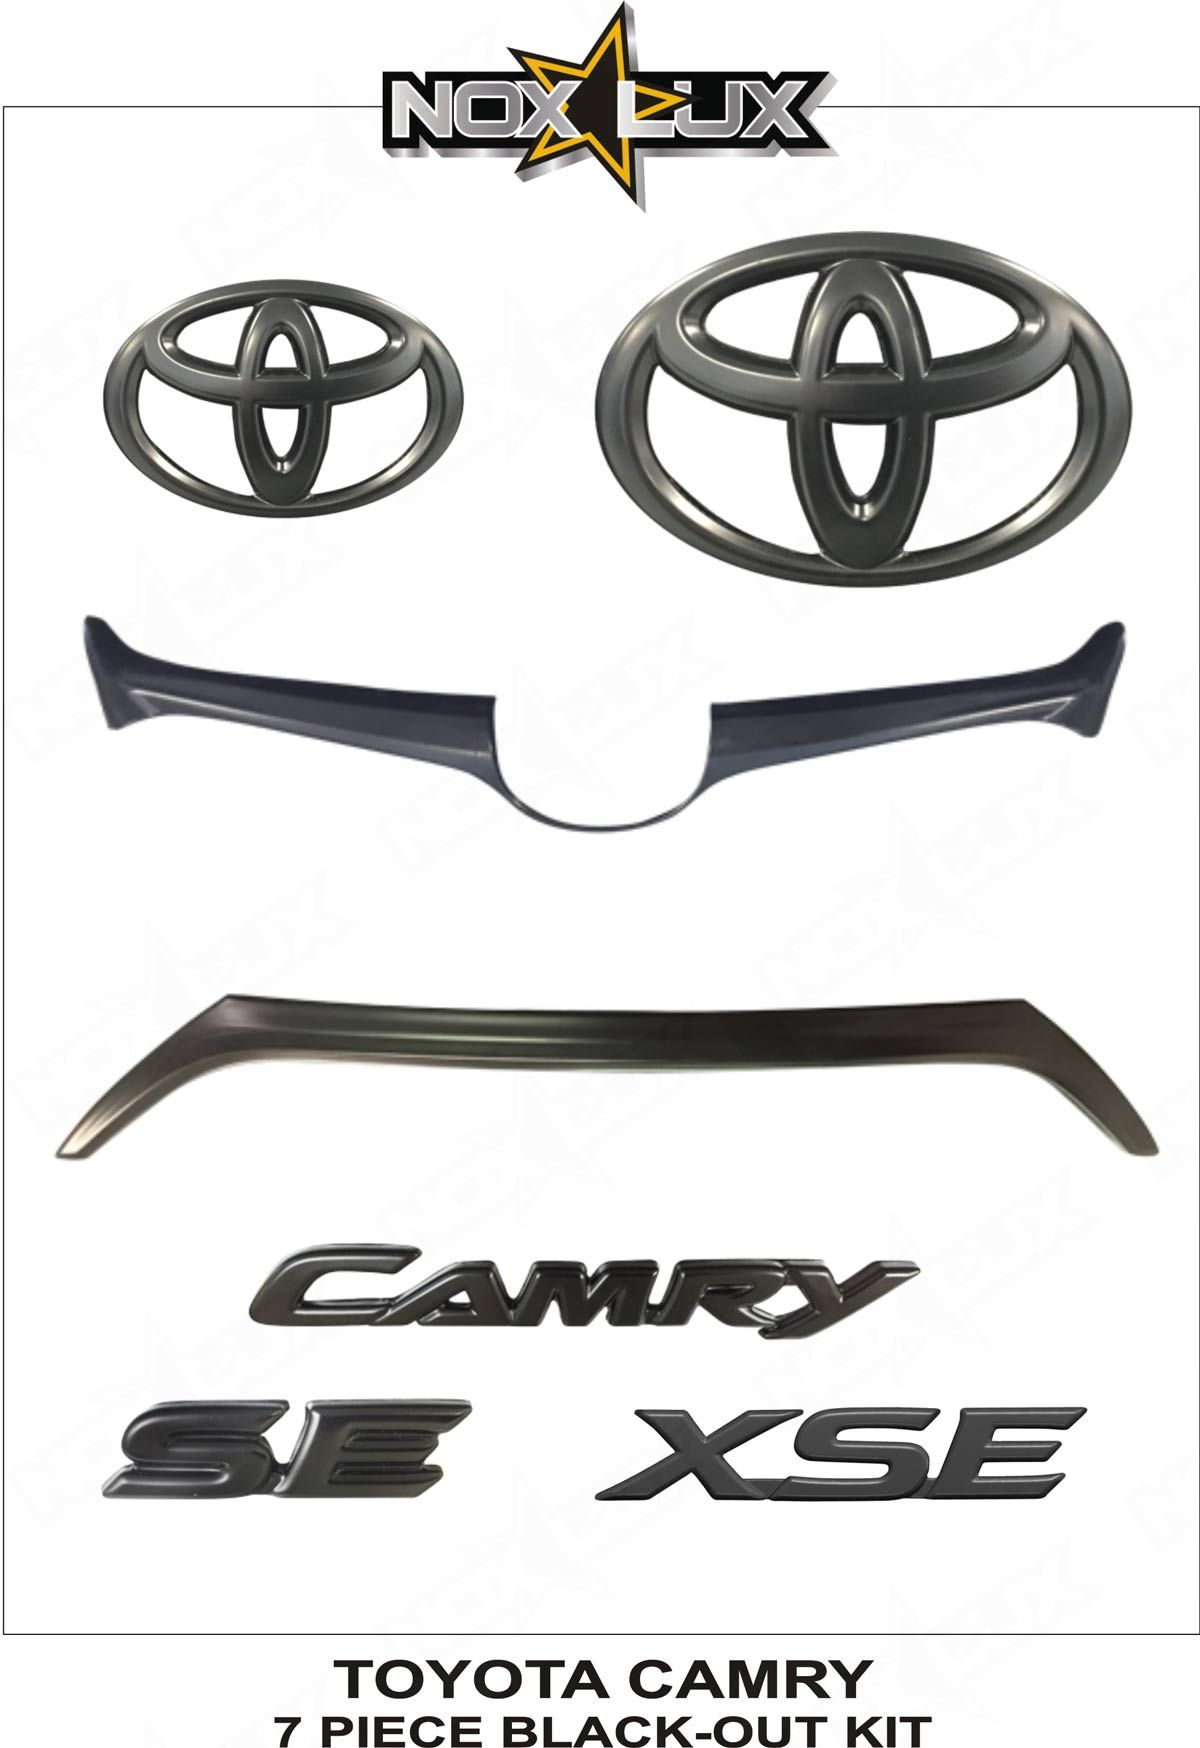 Nox lux 2015 2016 2017 toyota camry se xse emblem gloss black out overlay badge kit oem 7 pieces we offer the best in automobile accessories